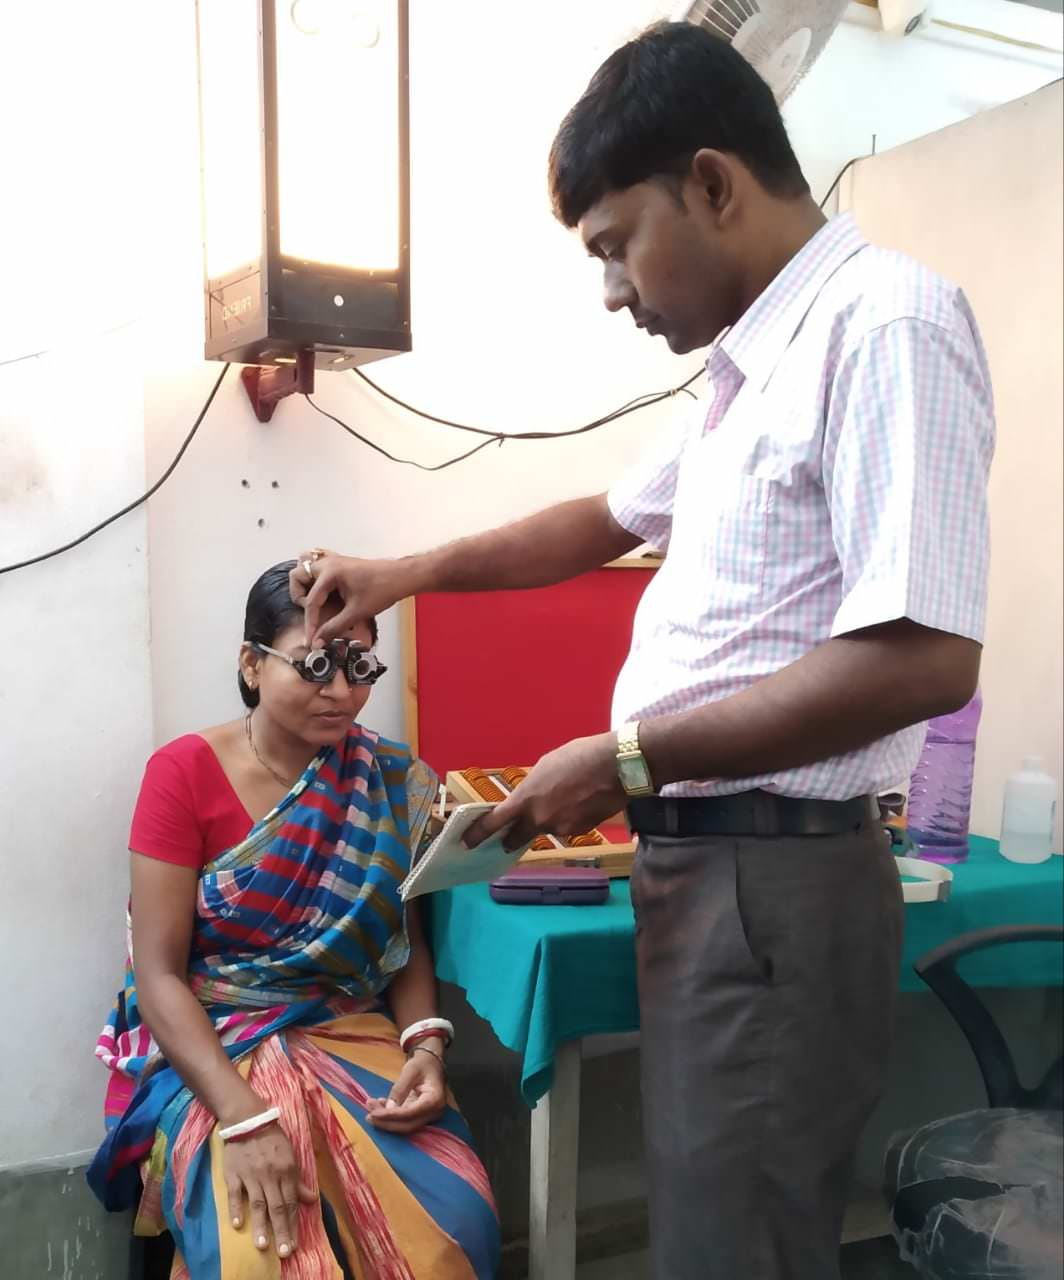 2019-11-11-eyecheckupforspectacles-ruralhealthcarefoundationcarefoundation.jpeg